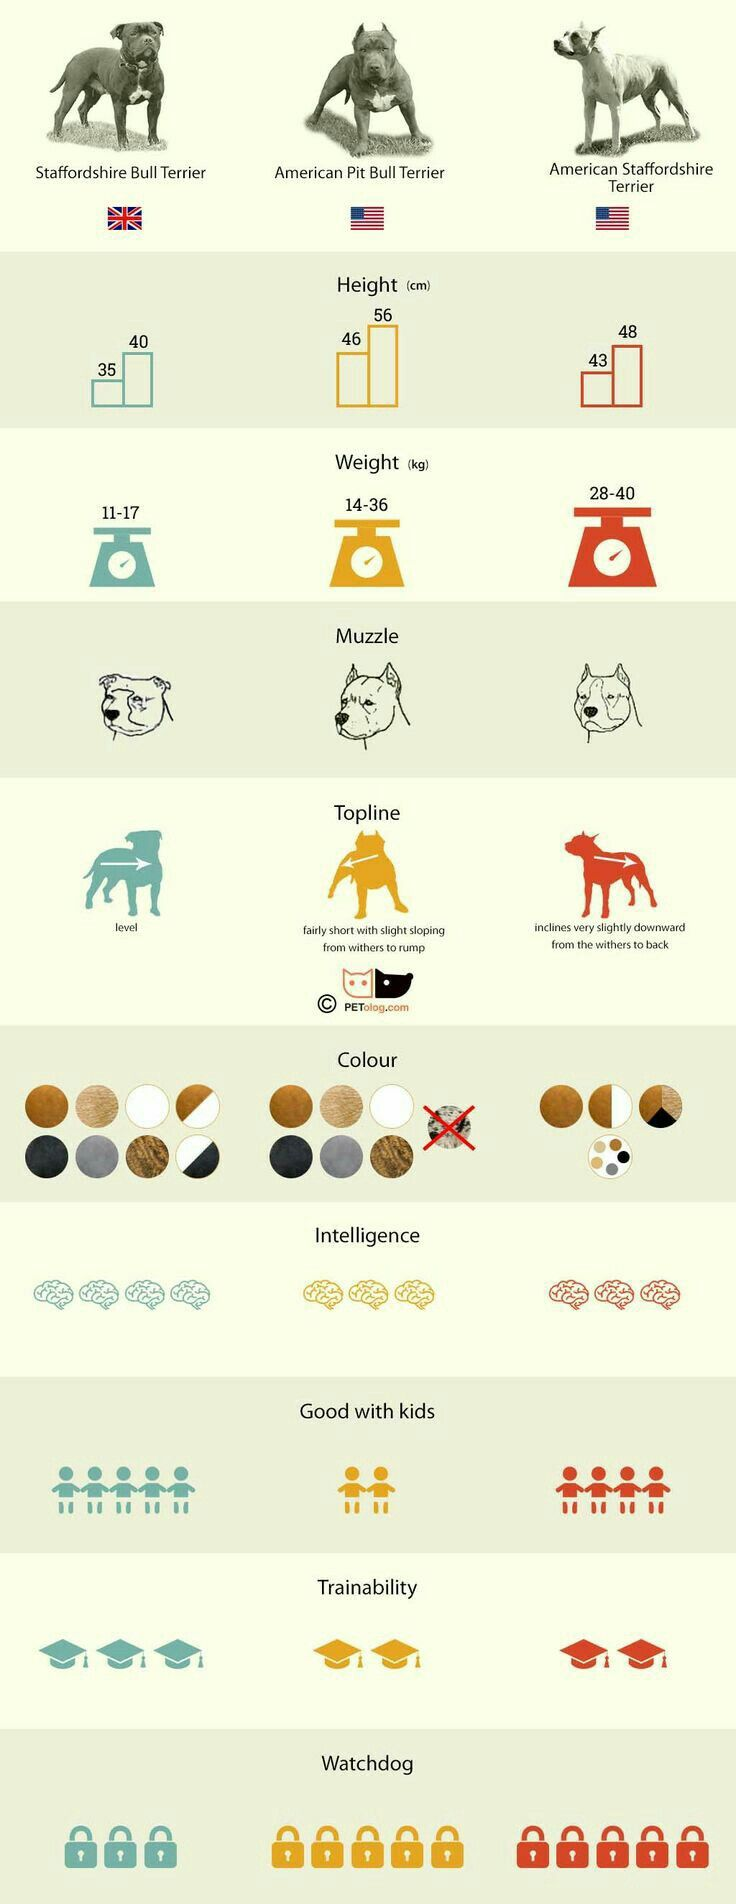 Pin by coraline on perros pitbull y sttaford son amor puro whats the difference between staffordshire bull terrier american staffordshire terrier american pitbull terrier in infographic geenschuldenfo Image collections